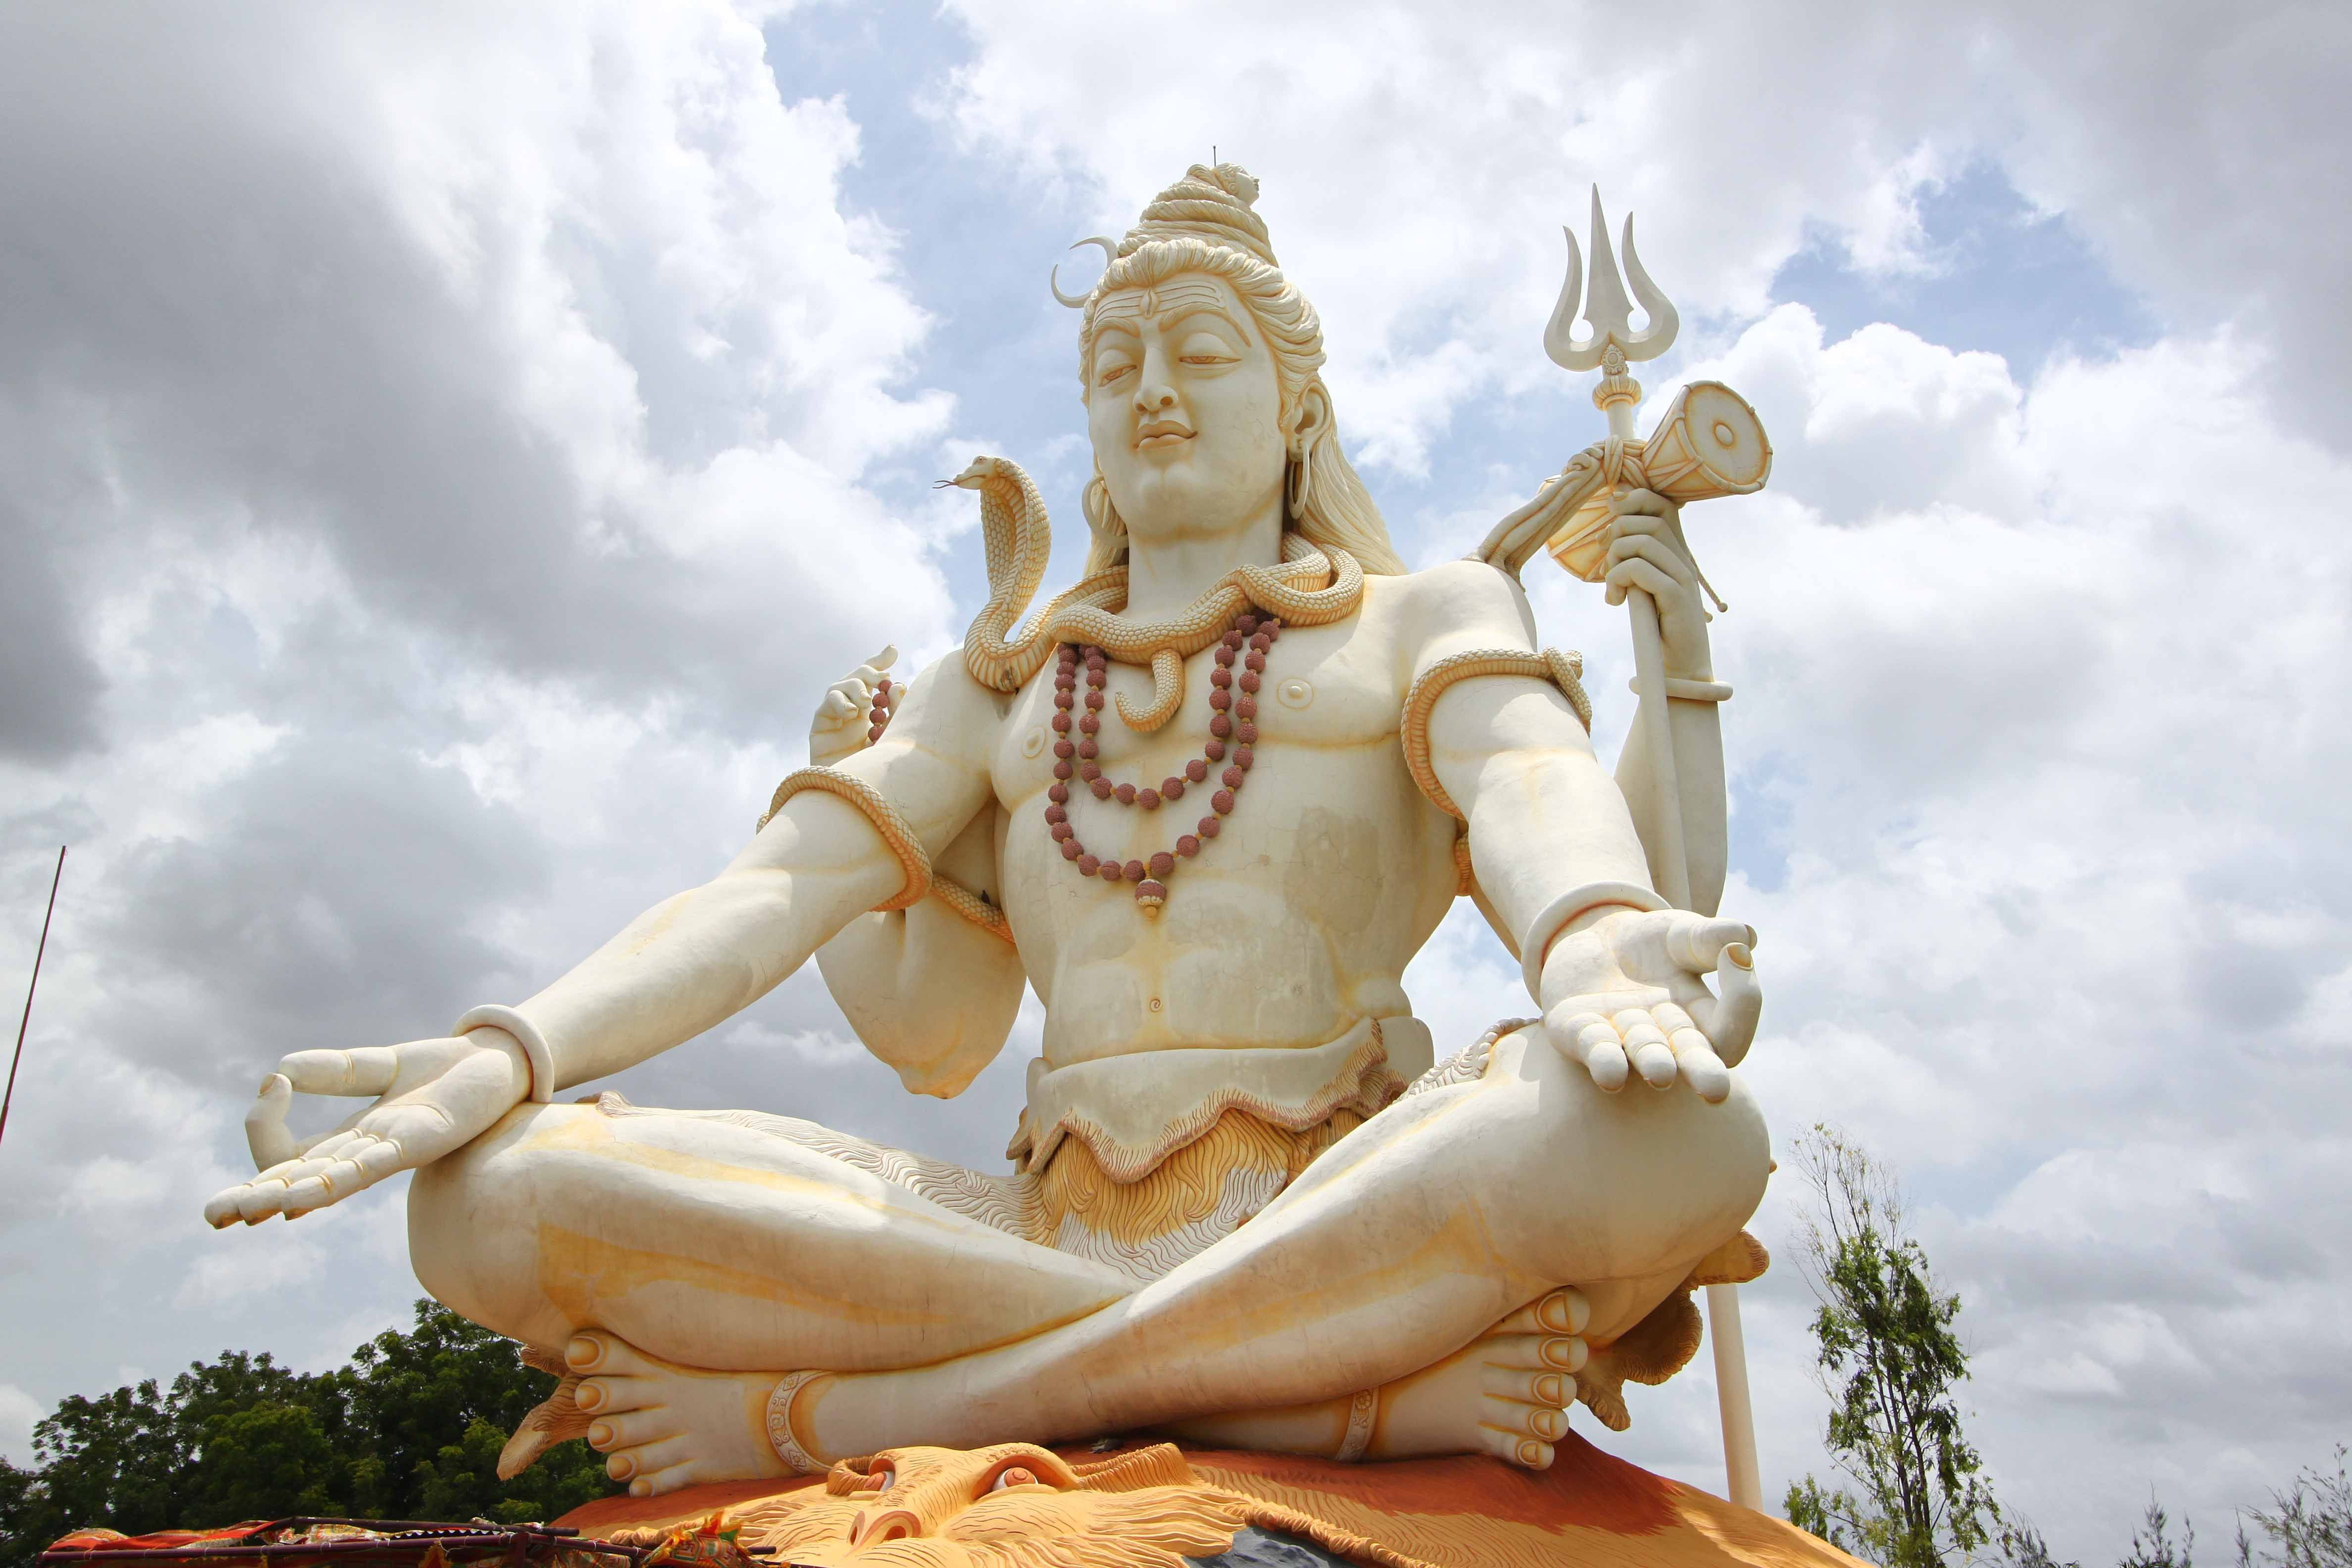 Lord God Shiv Shiva Hd Wallpapers Photos In High Quality Lord Shiva Hd Wallpaper Shiva Wallpaper Lord Shiva